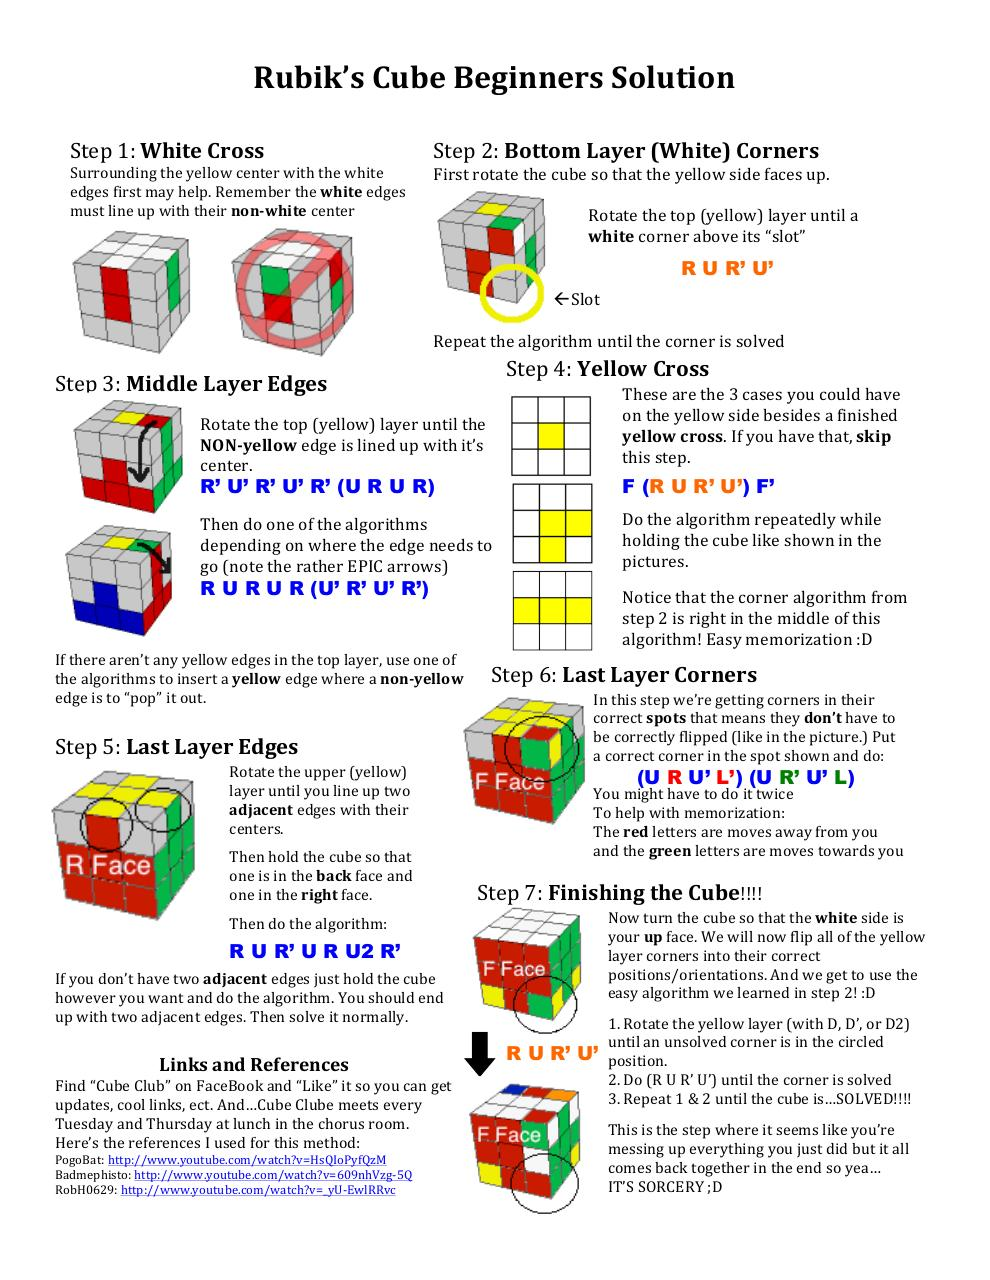 Rubiks Cube Beginners Solution By Thomas Ingui Rubiks Cube